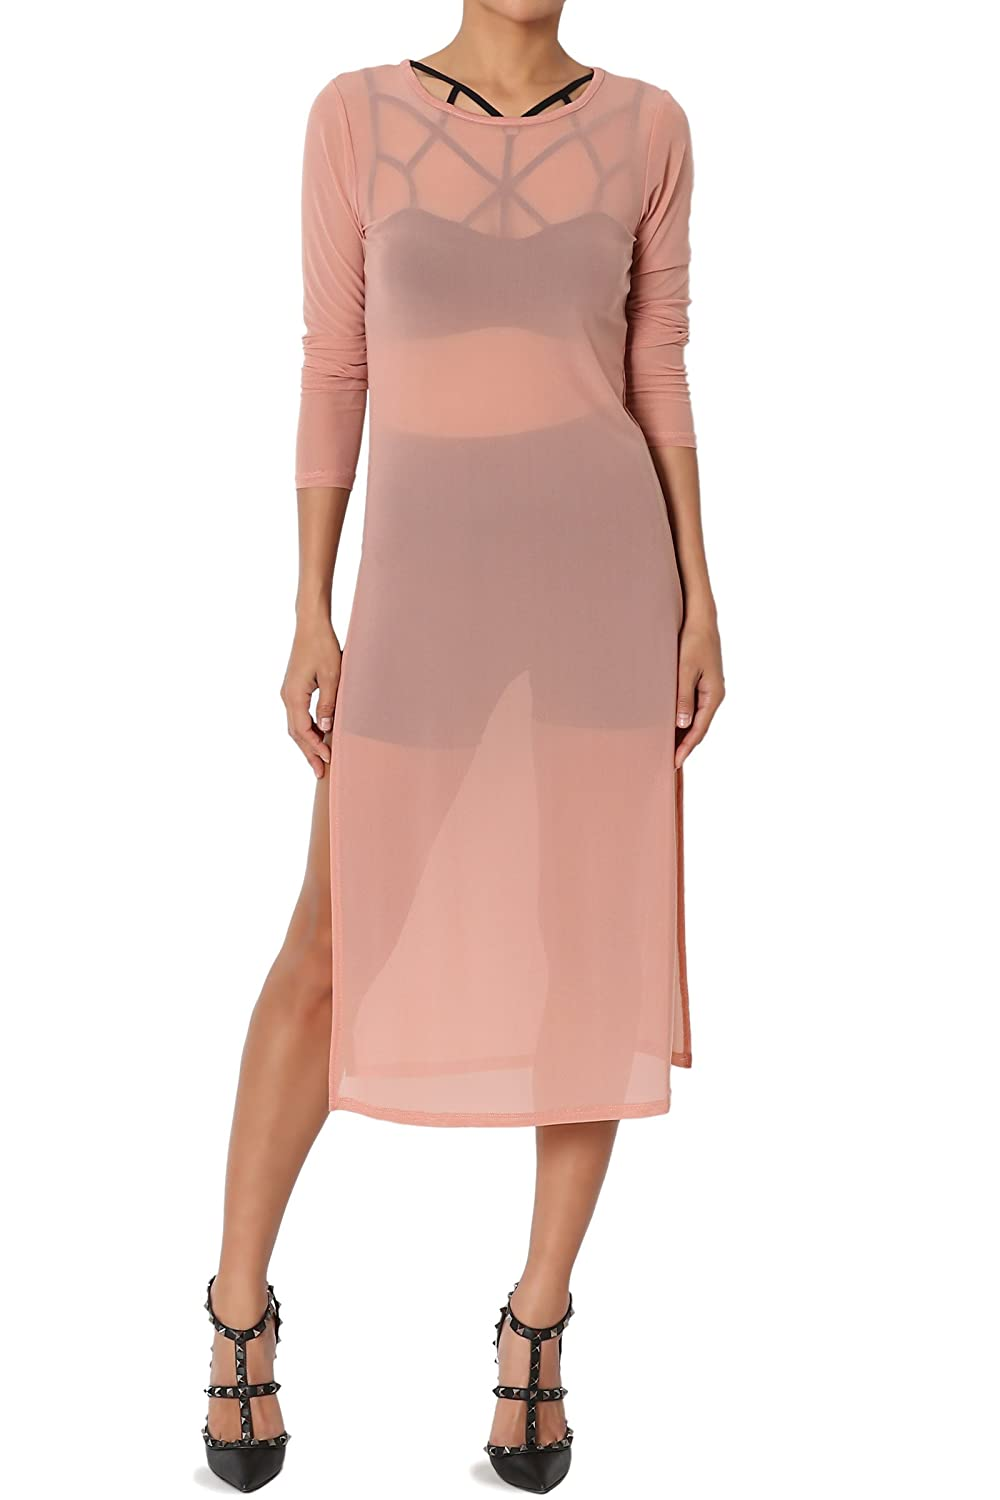 0ab78d8586 See-through high slit midi dress, longline top. Versatile, and sexy sheer  mesh cover up. Long sleeves, crew neckline, high slit at sides, lightweight